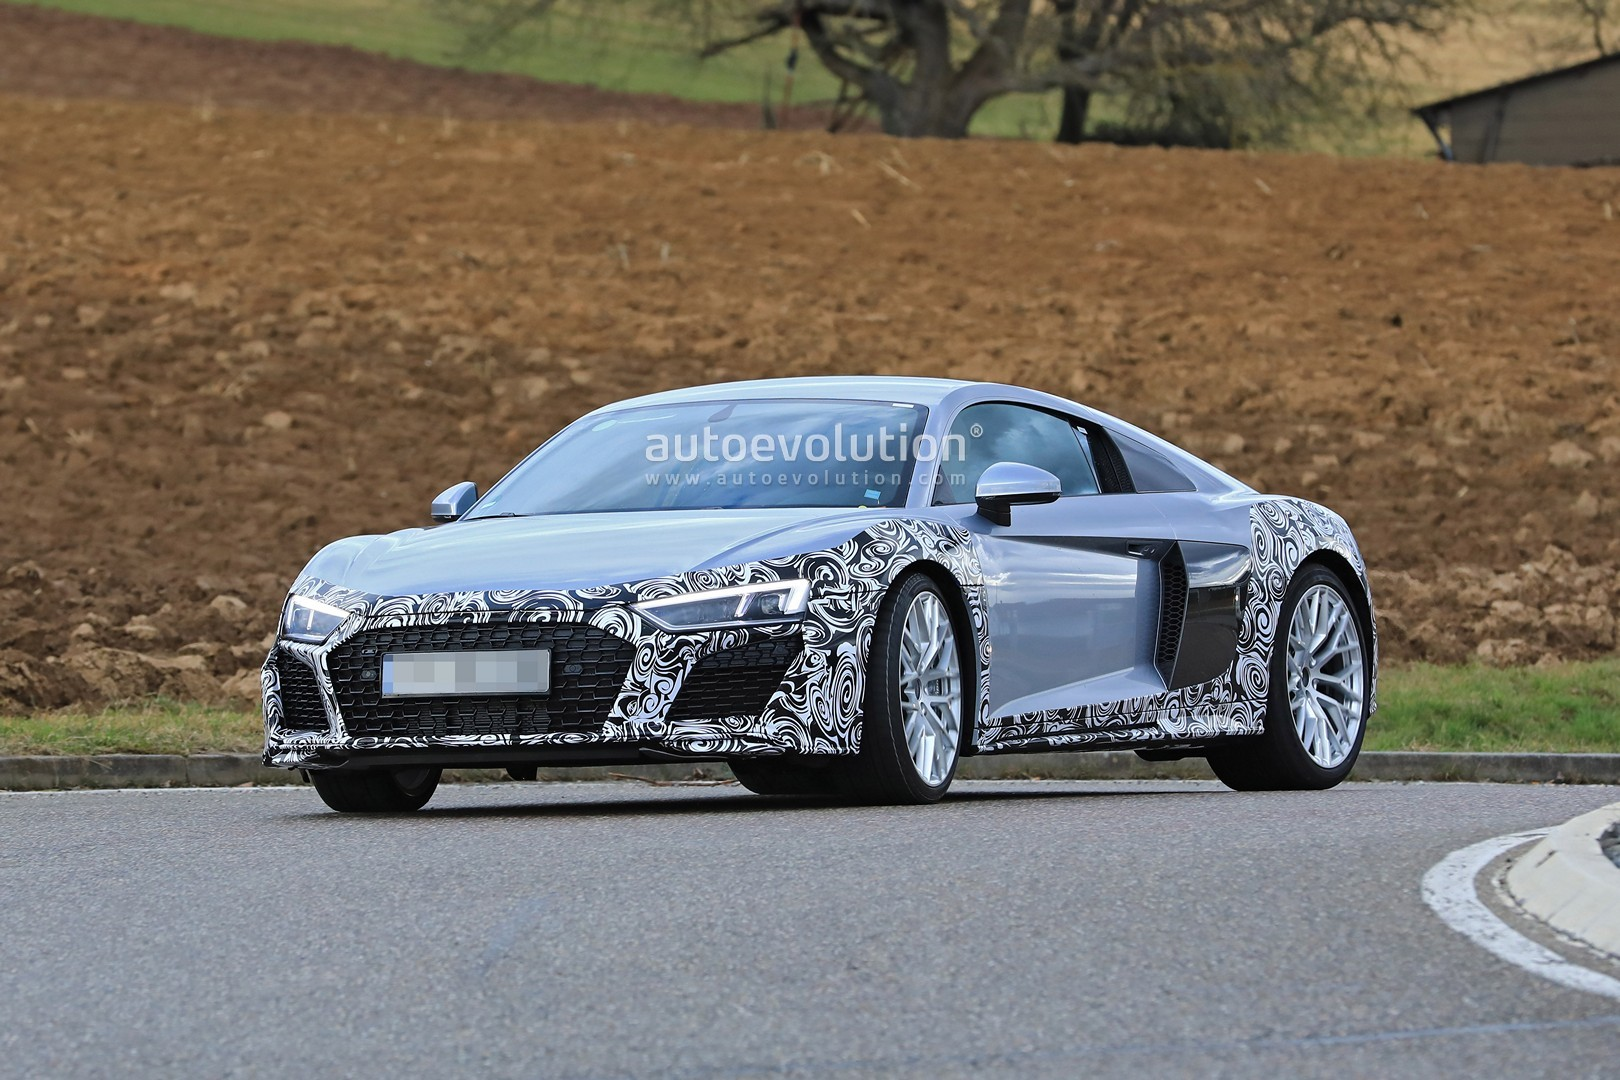 spyshots audi r8 facelift makes testing debut looks like the acura nsx autoevolution. Black Bedroom Furniture Sets. Home Design Ideas